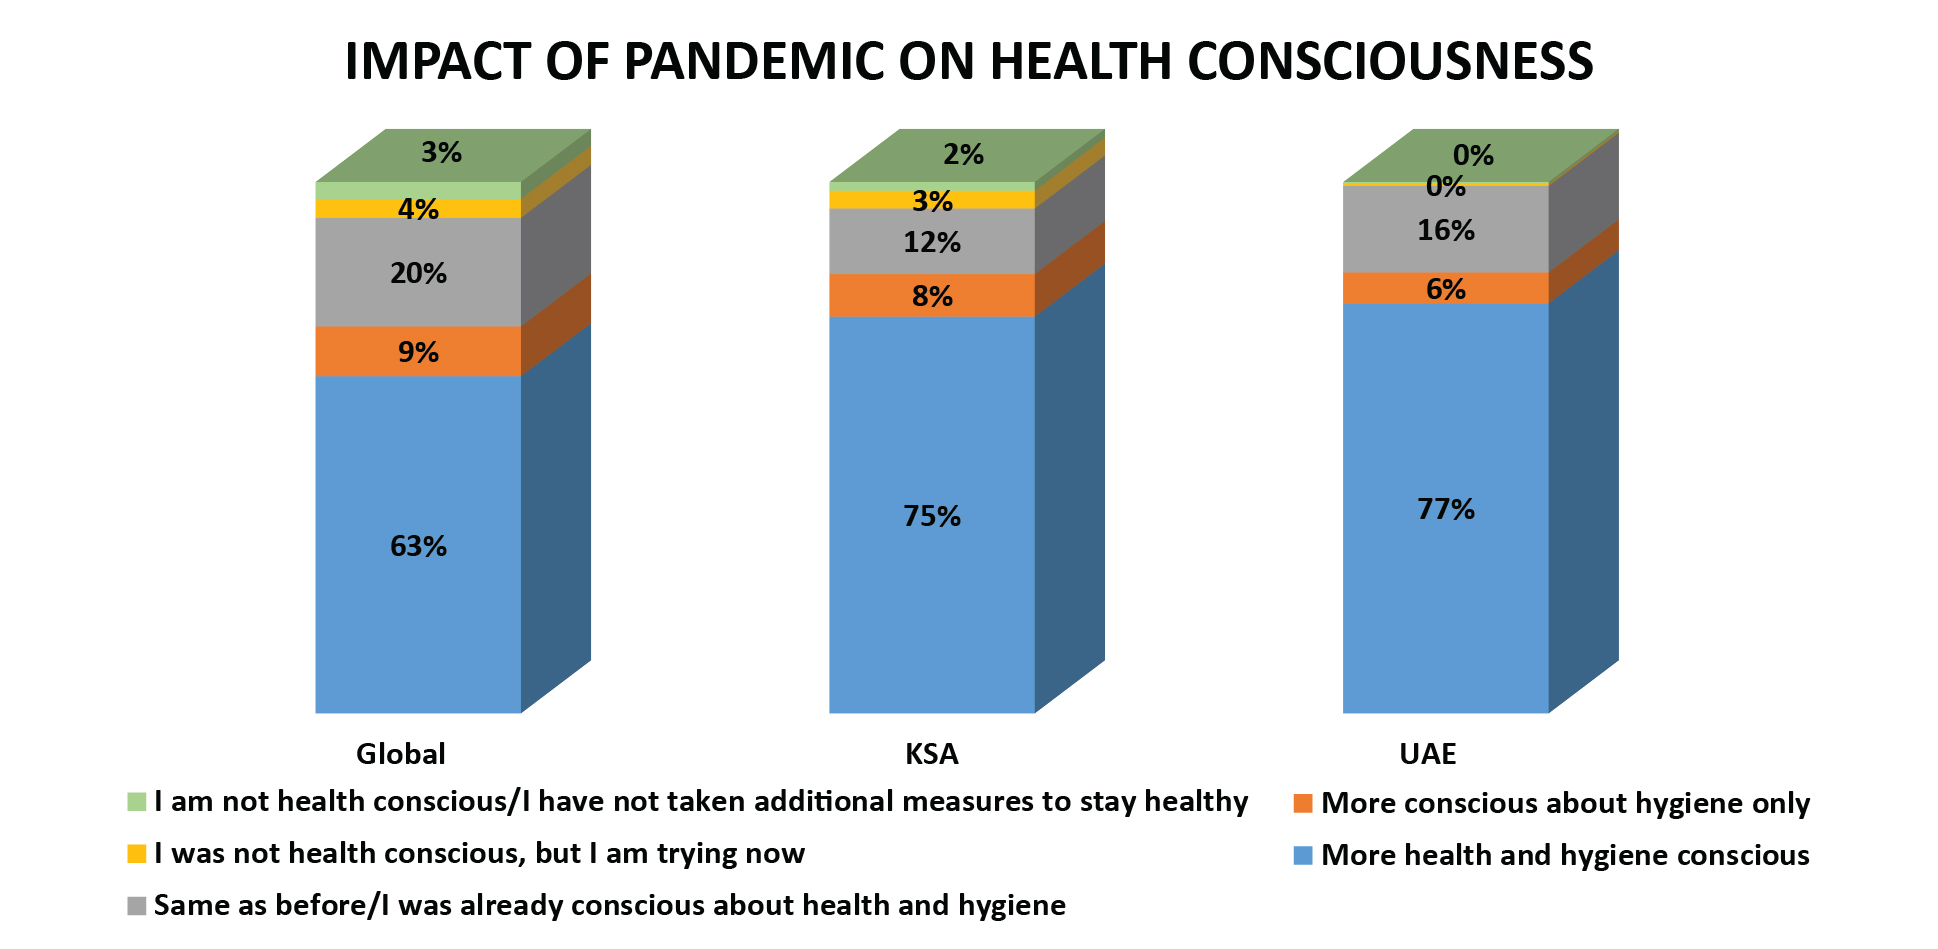 Healthy lifestyles embraced as a result of the pandemic-01